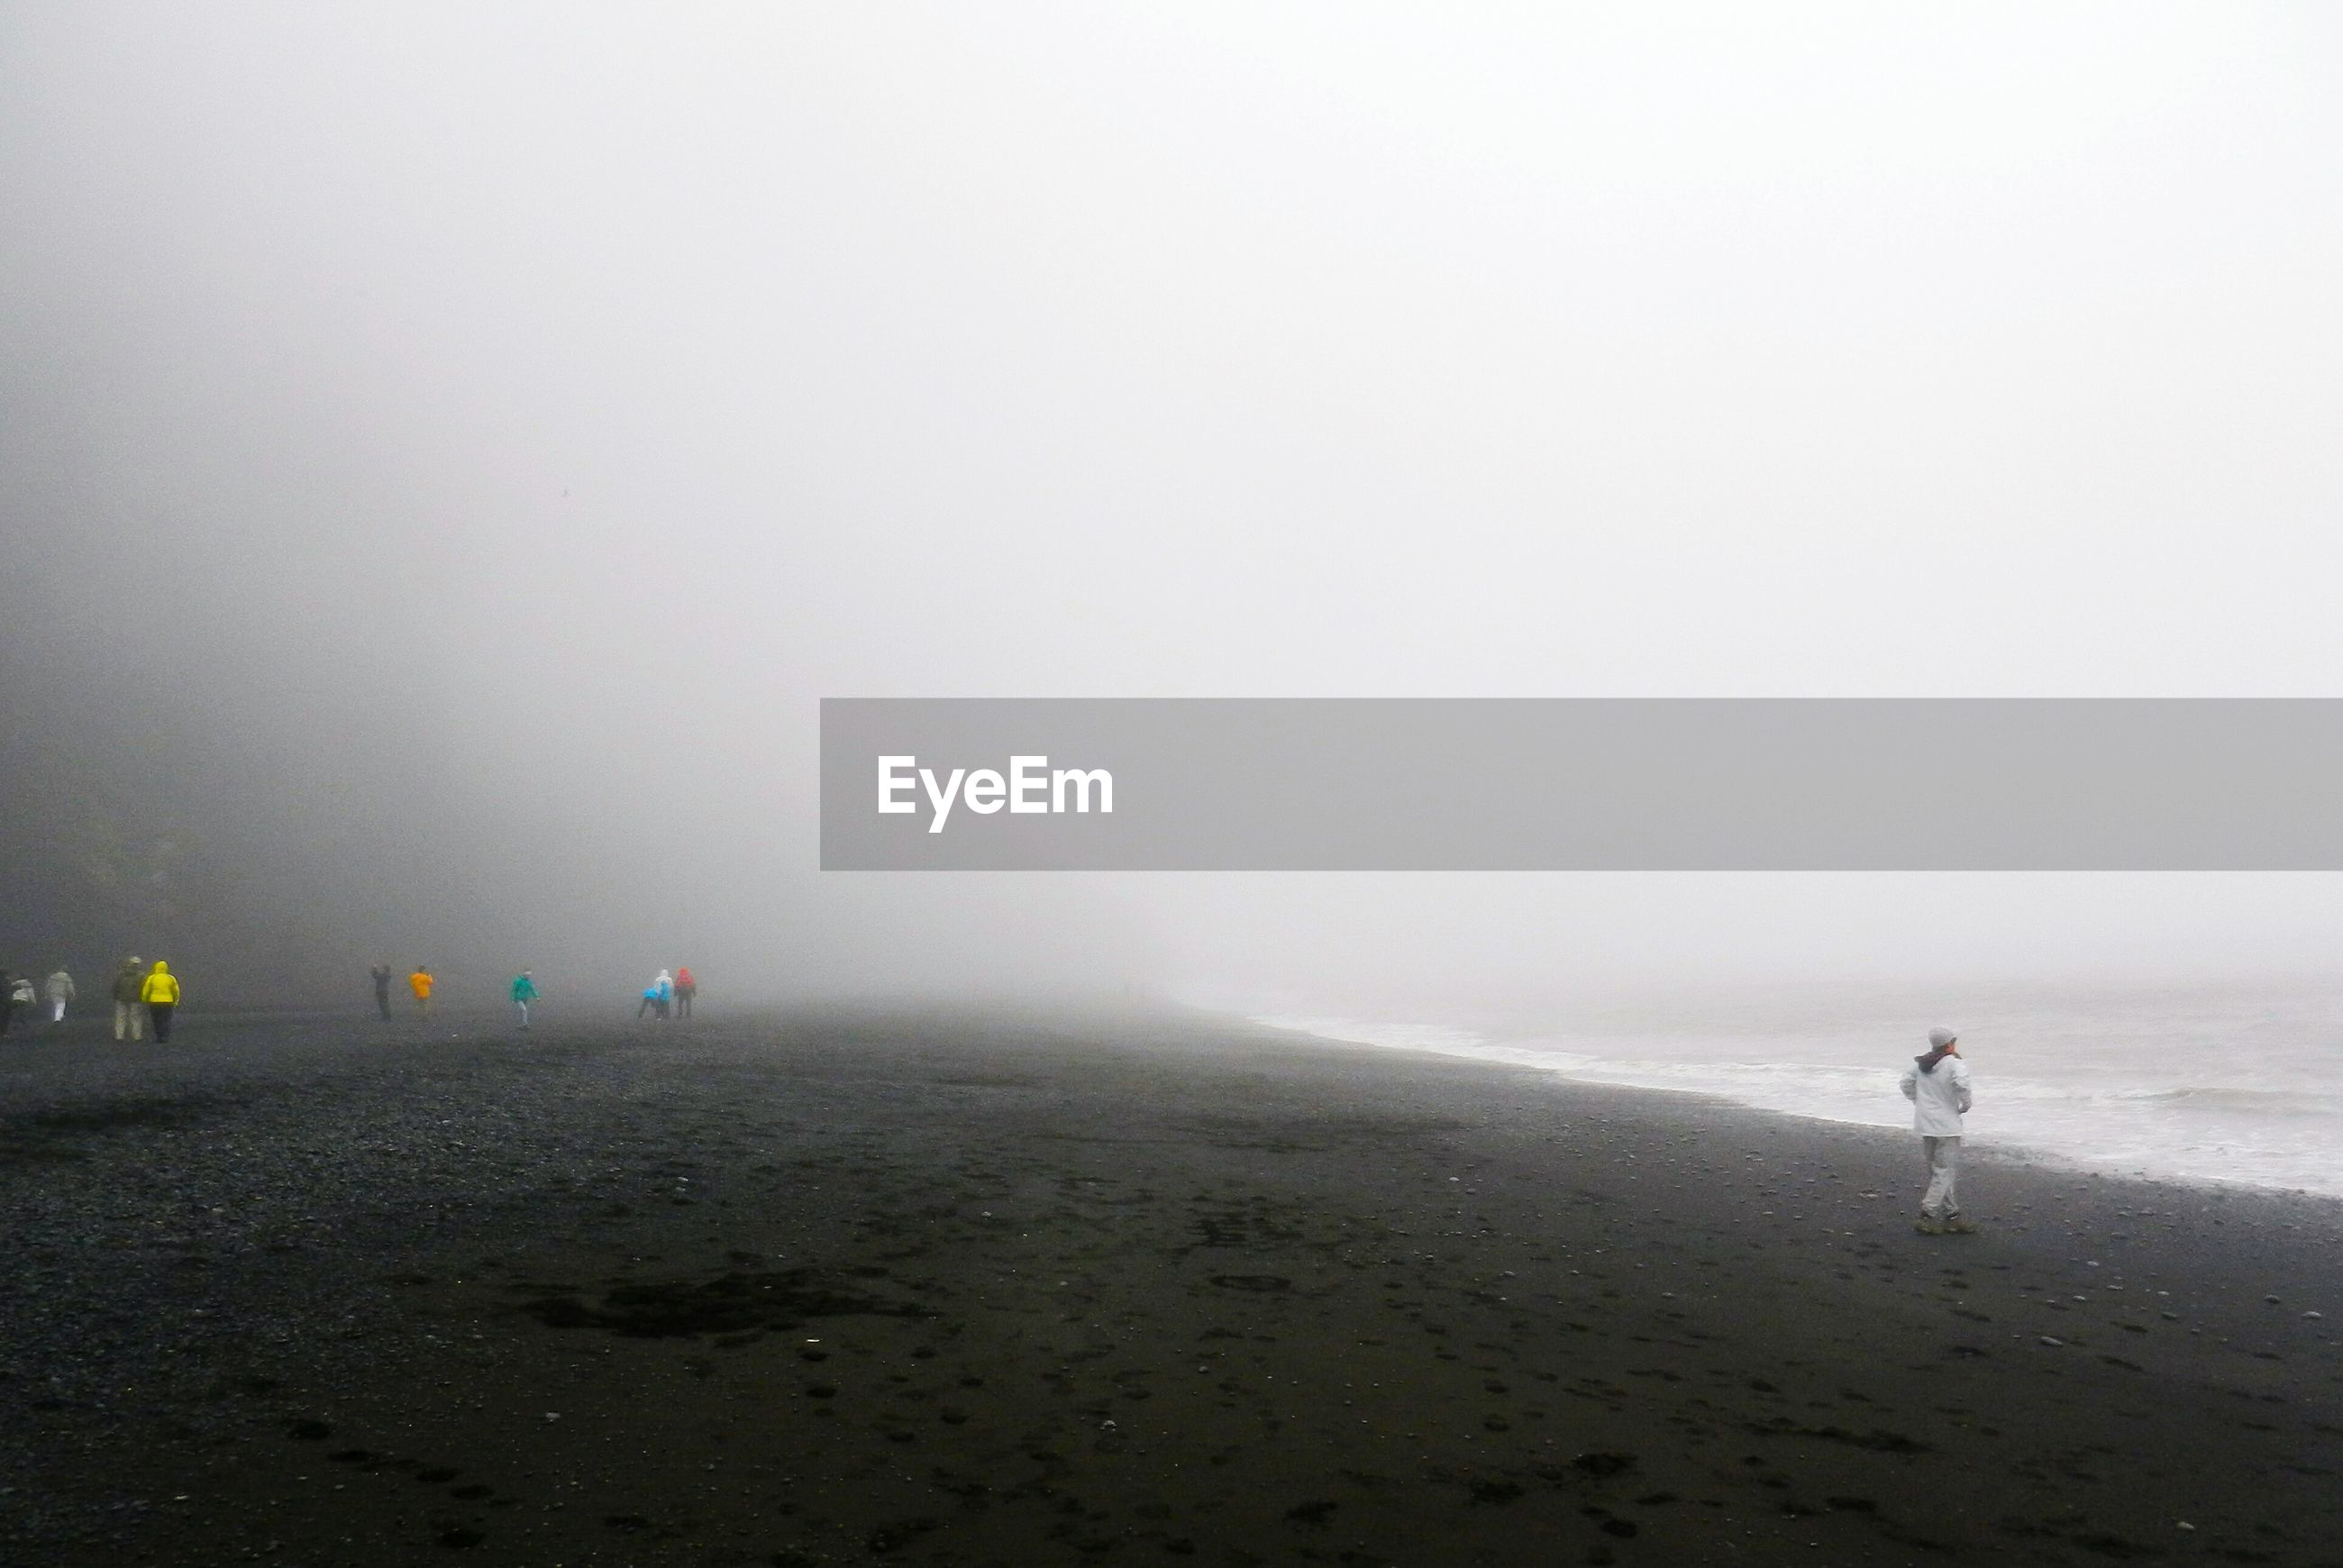 People at beach during foggy weather